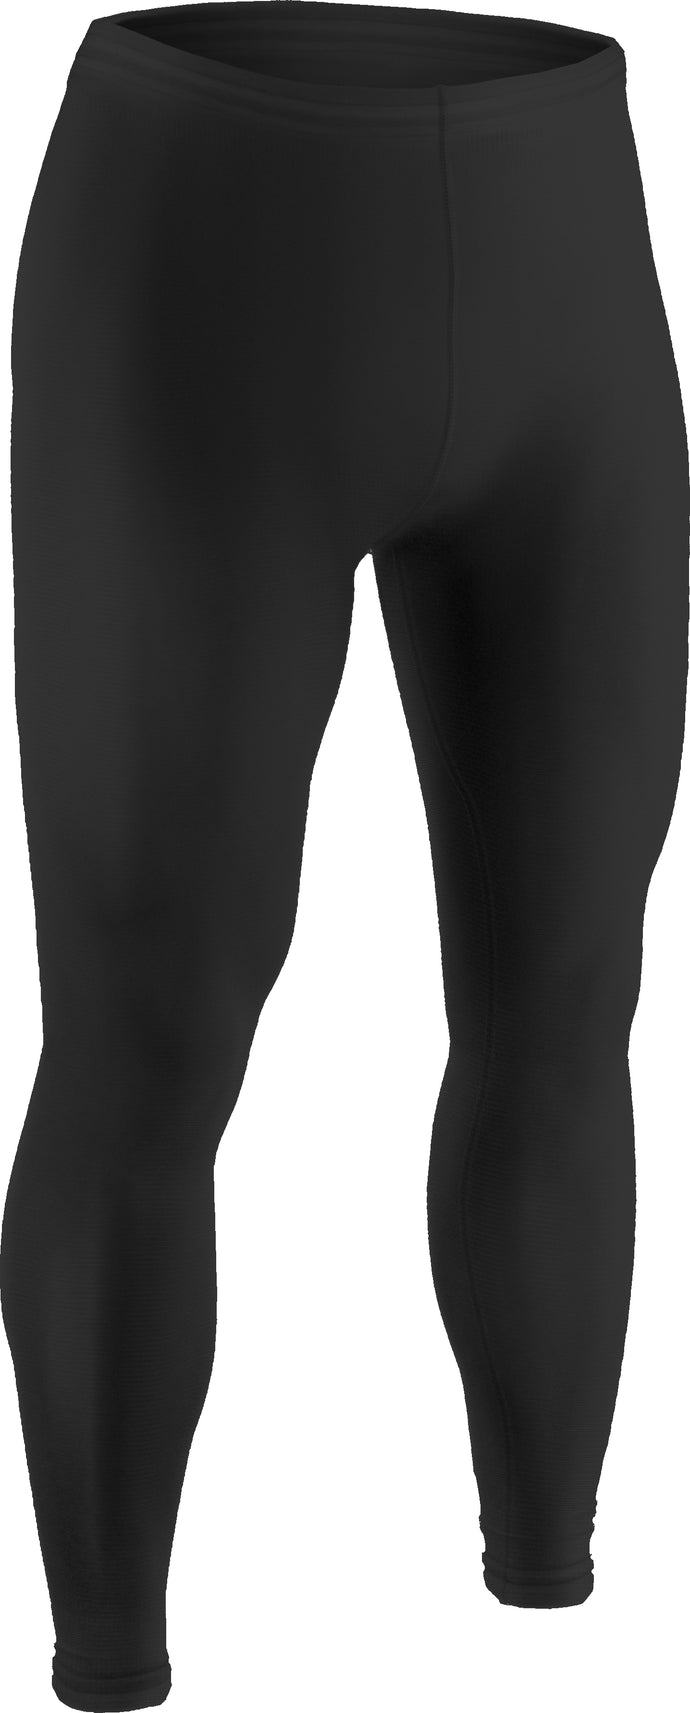 CL-112Y-CB Youth Cotton Lycra Ankle Length Sport Tight